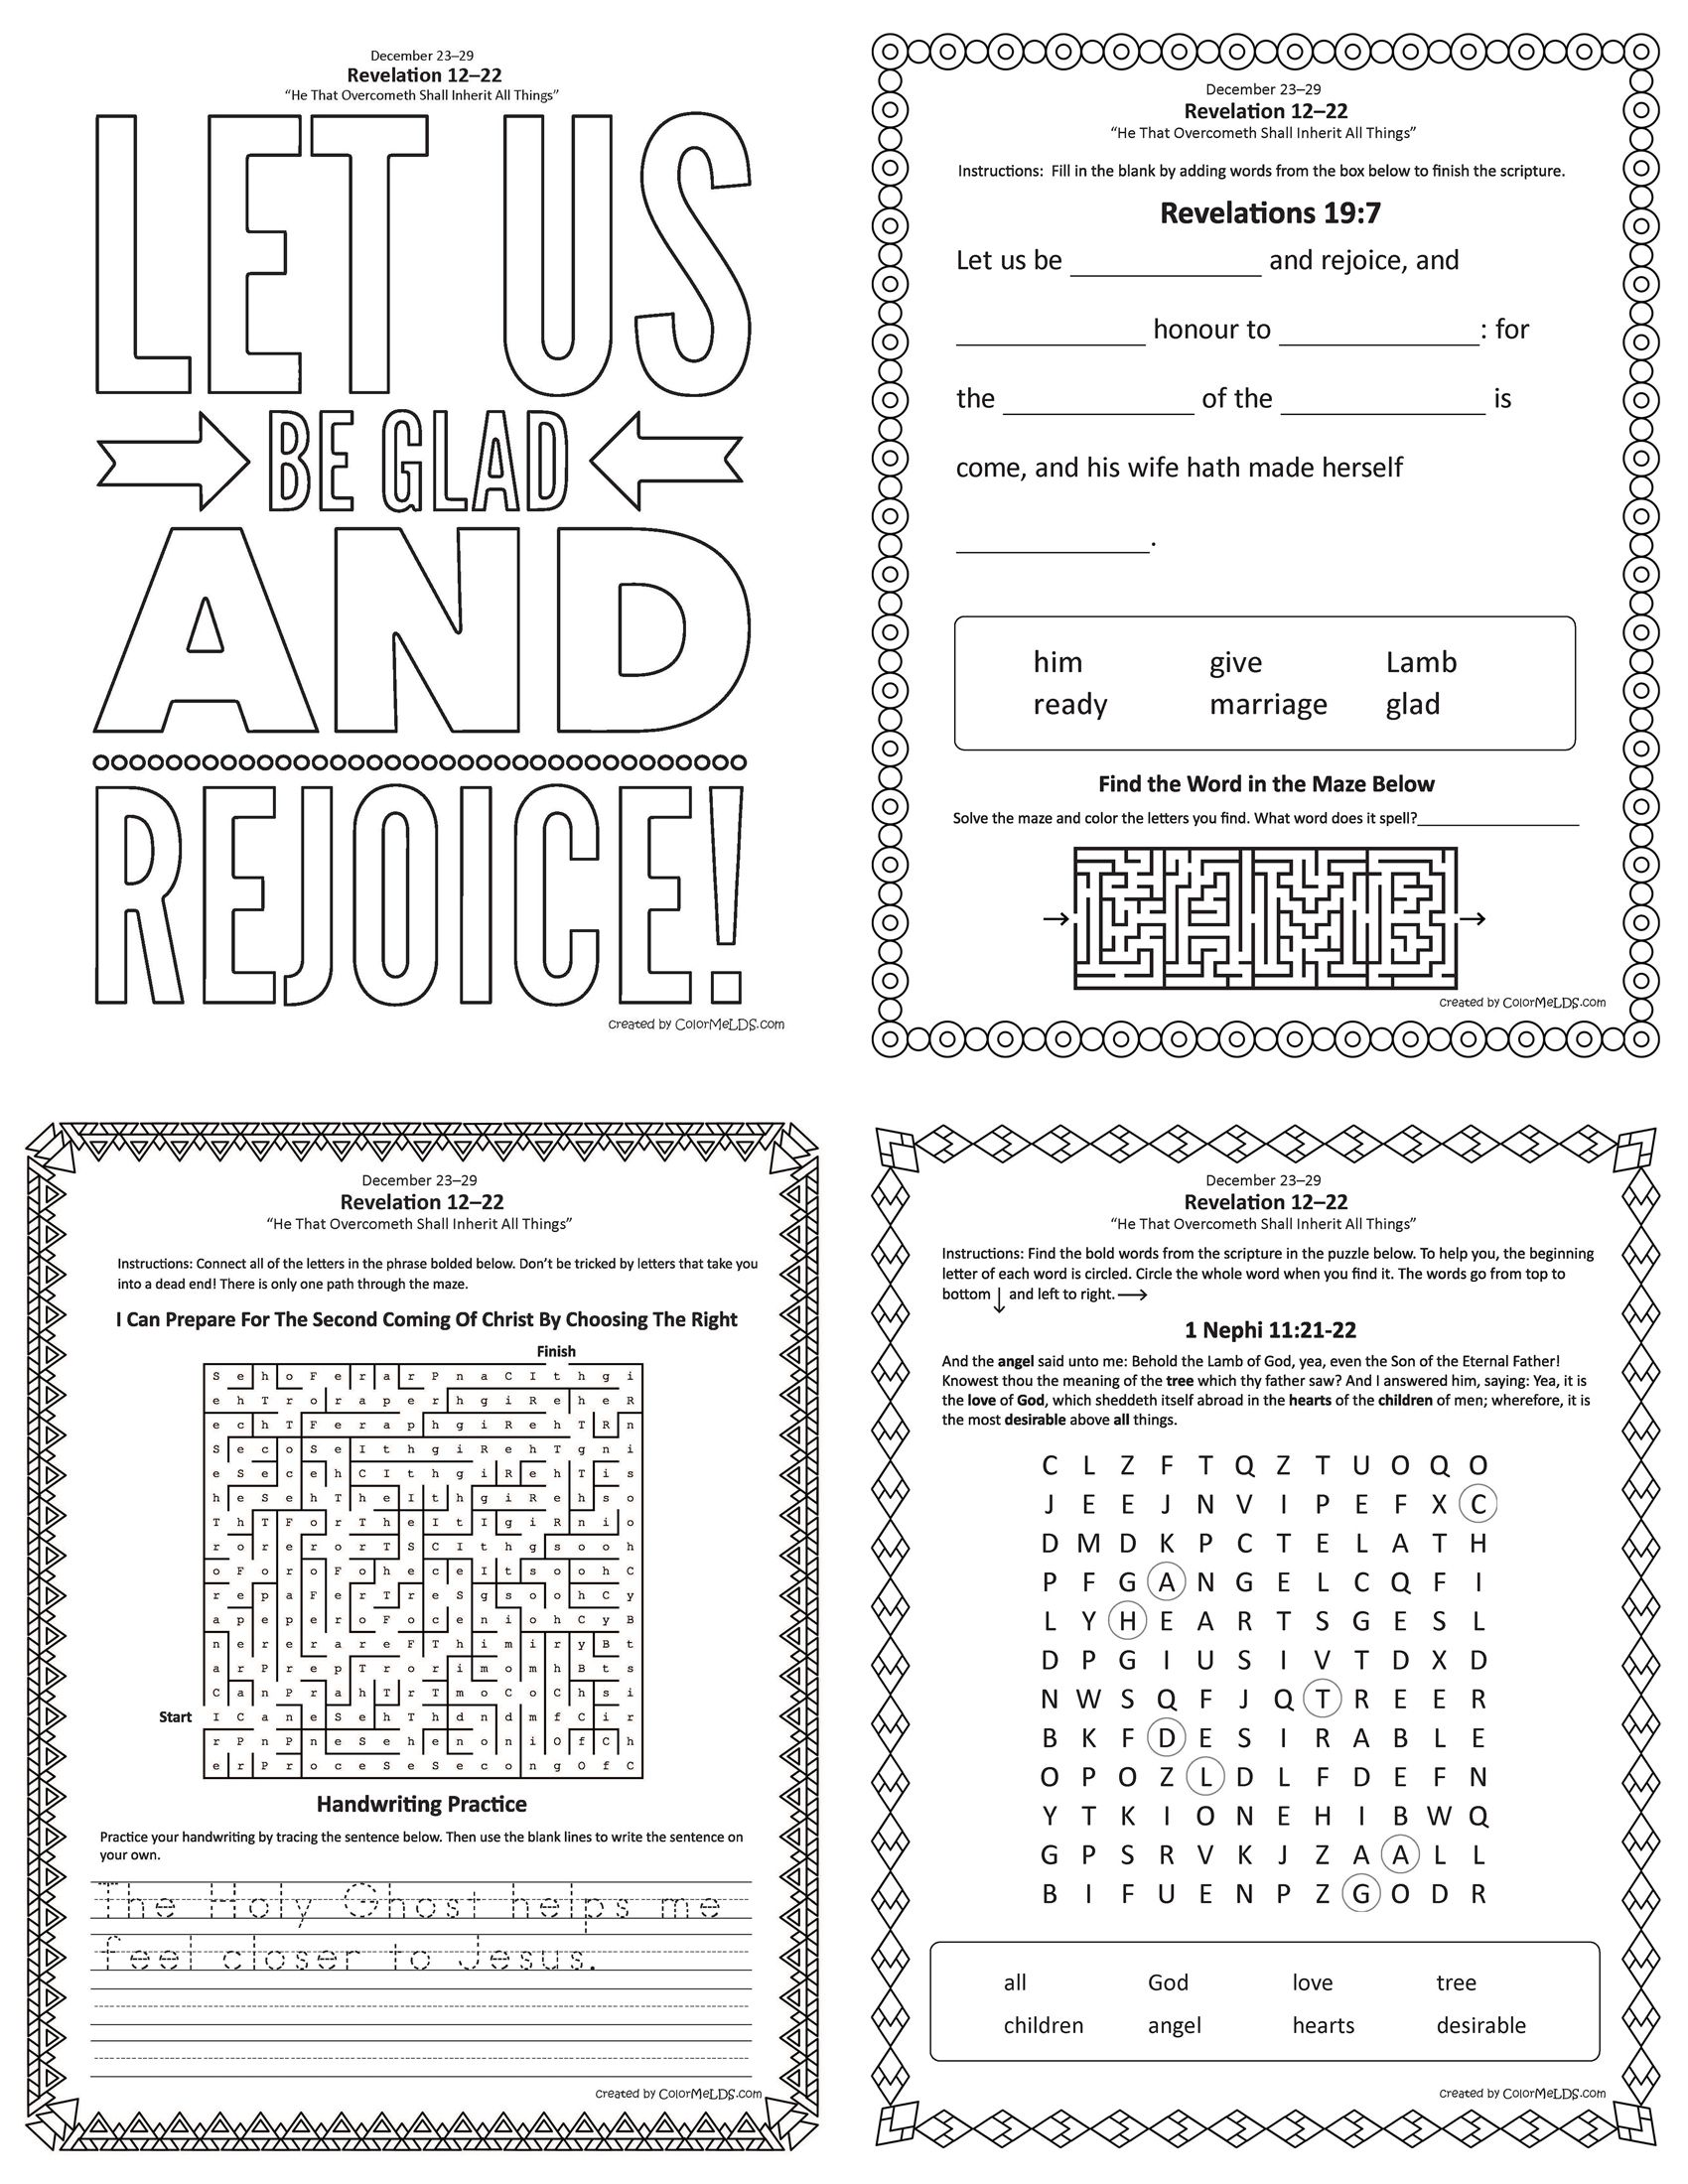 Free Lds Worksheets And Printables Word Crumb Mazes Word Searches